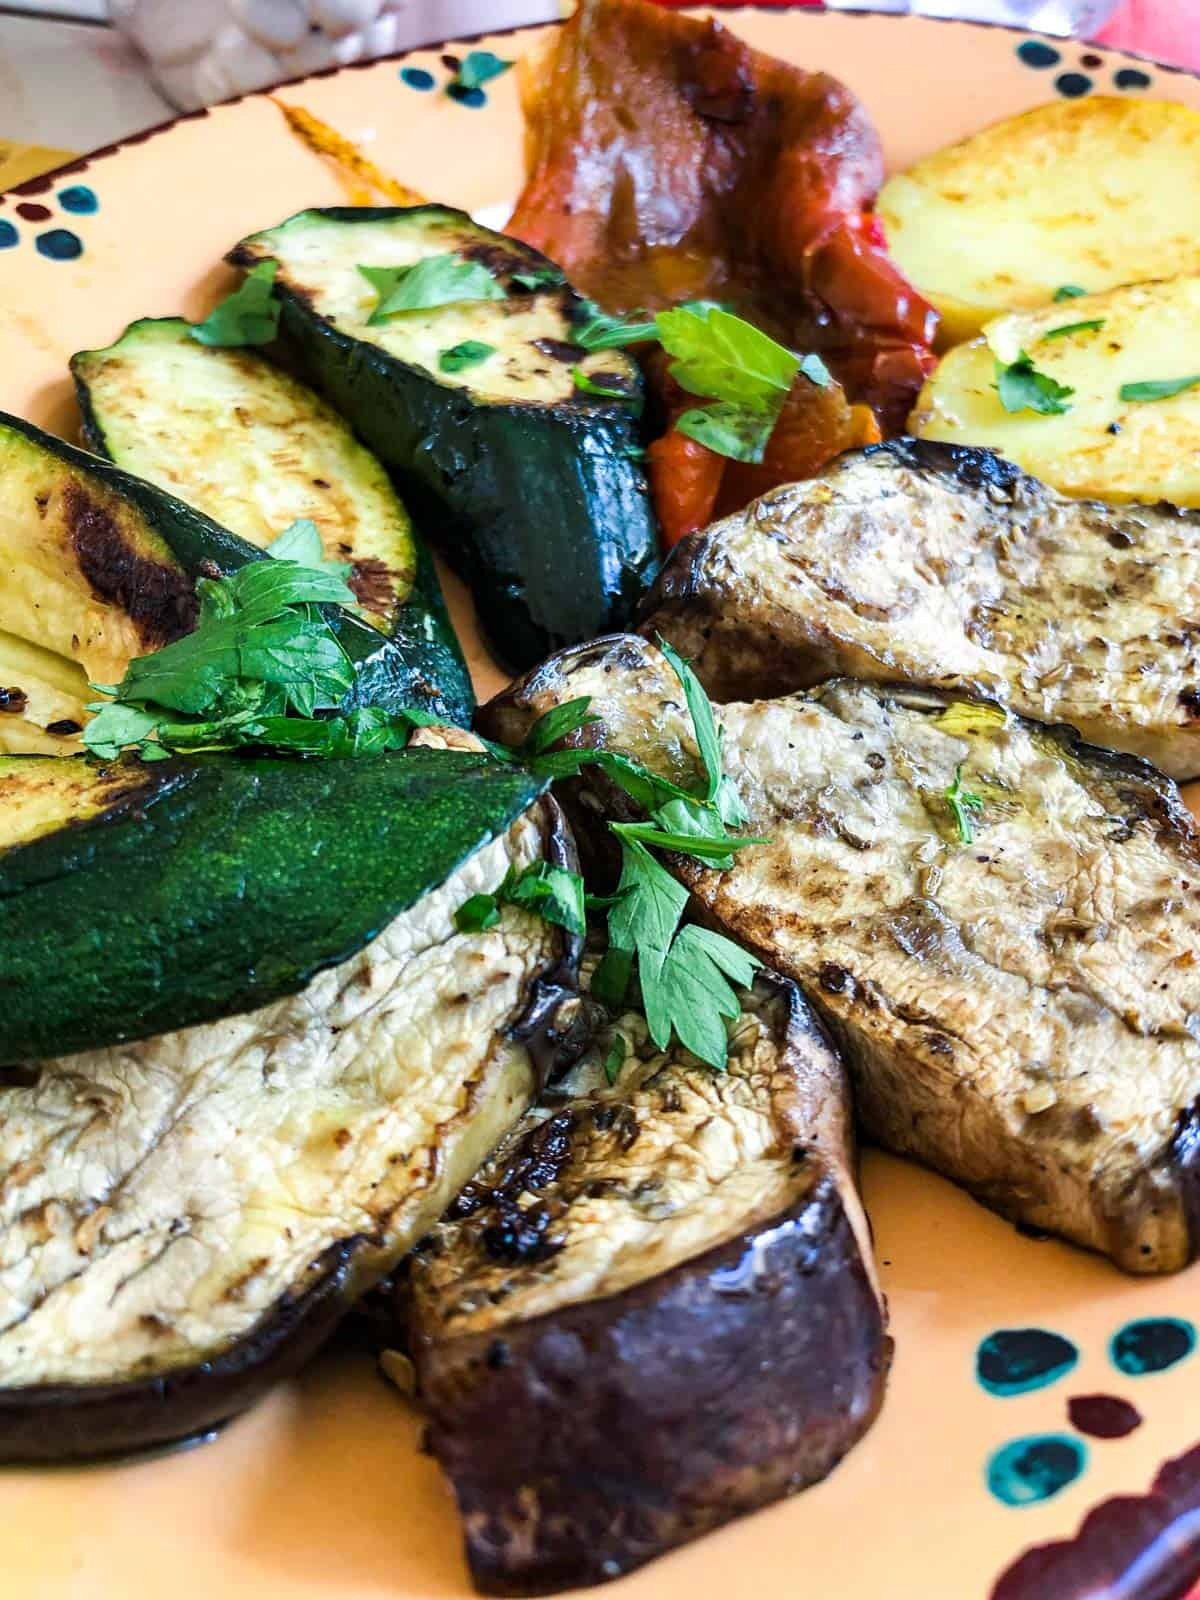 Oval platter with grilled courgette, red pepper, slices of aubergine and white potatoes